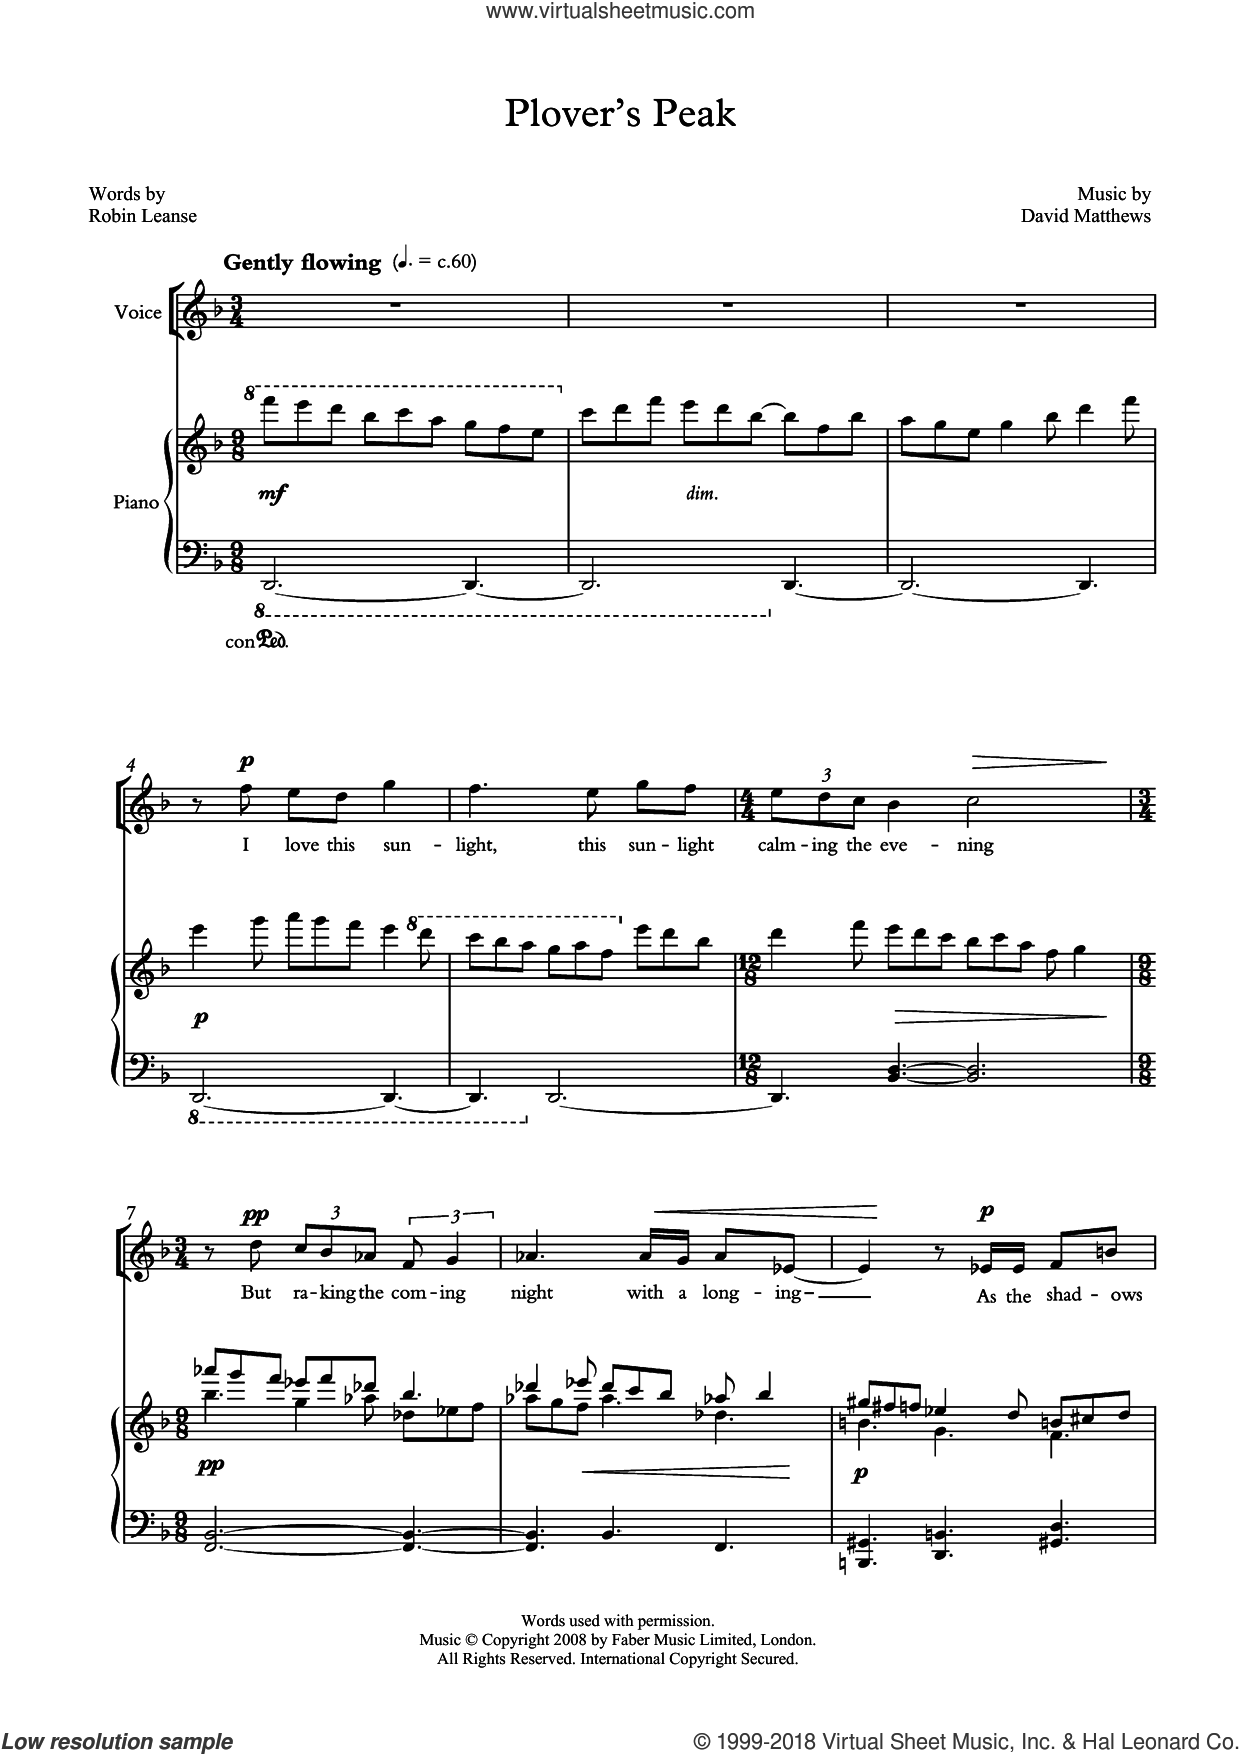 Plover's Peak (for tenor and piano) sheet music for voice and piano by David Matthews and Robin Leanse, classical score, intermediate skill level